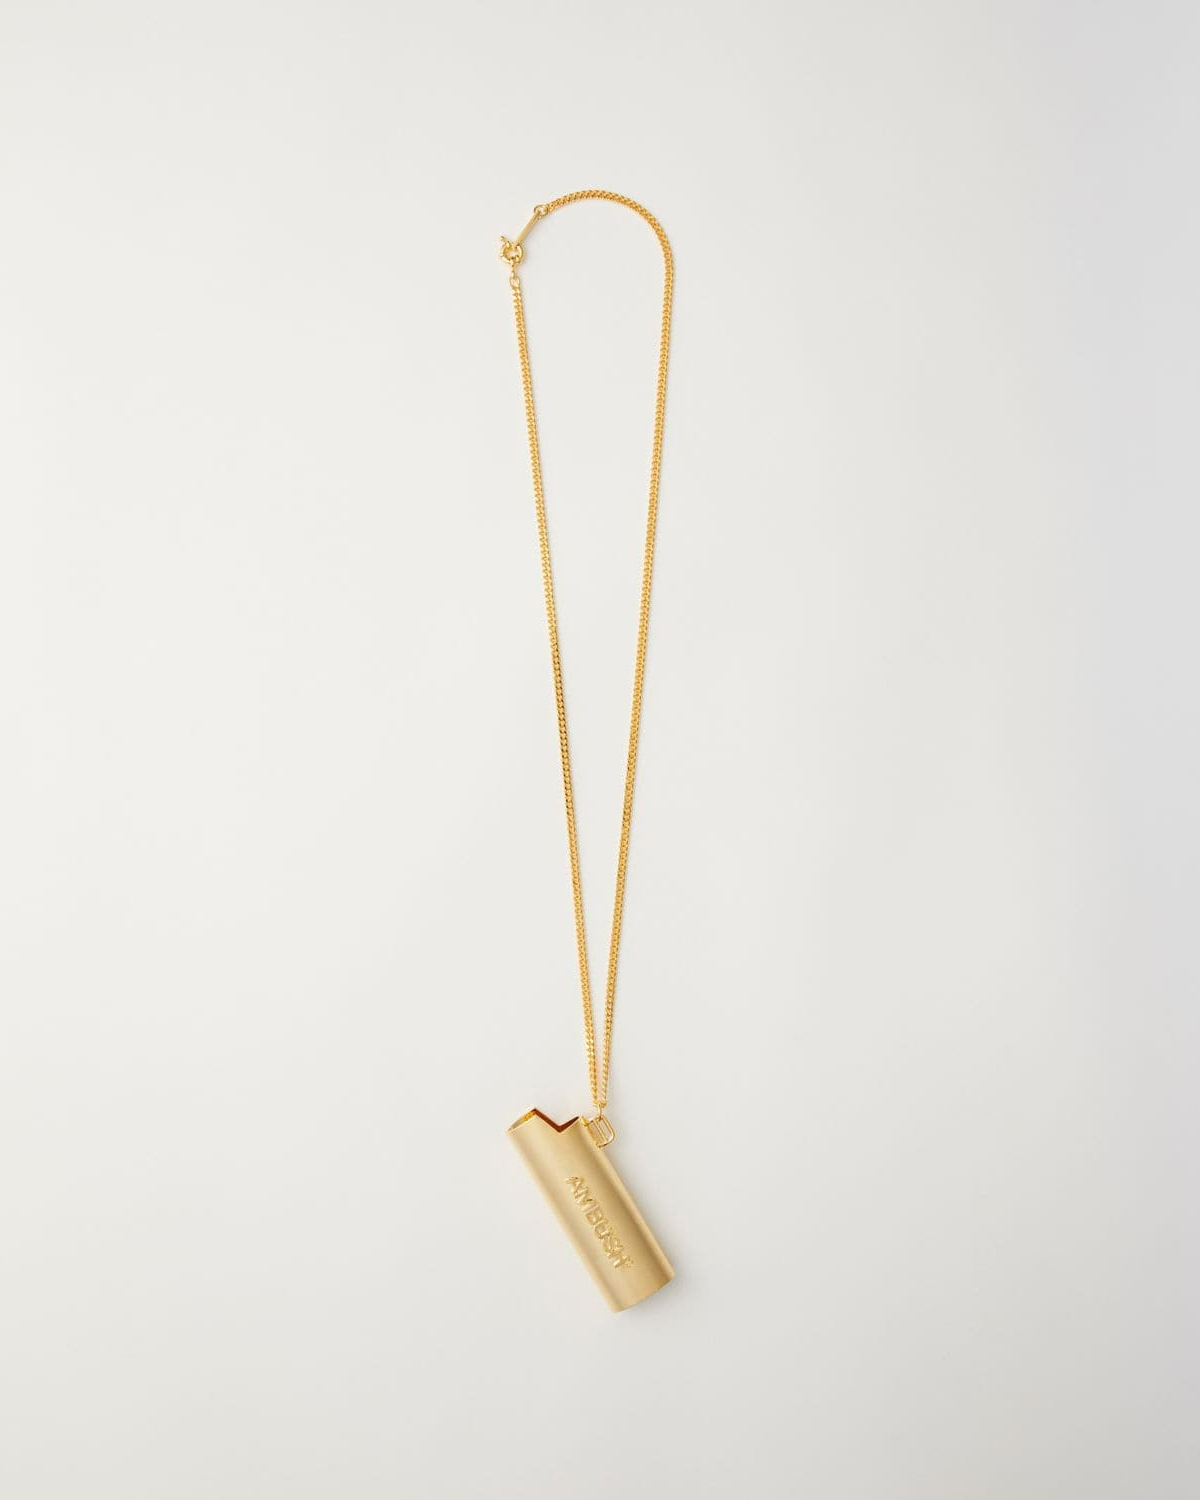 Ambush lighter case necklace L